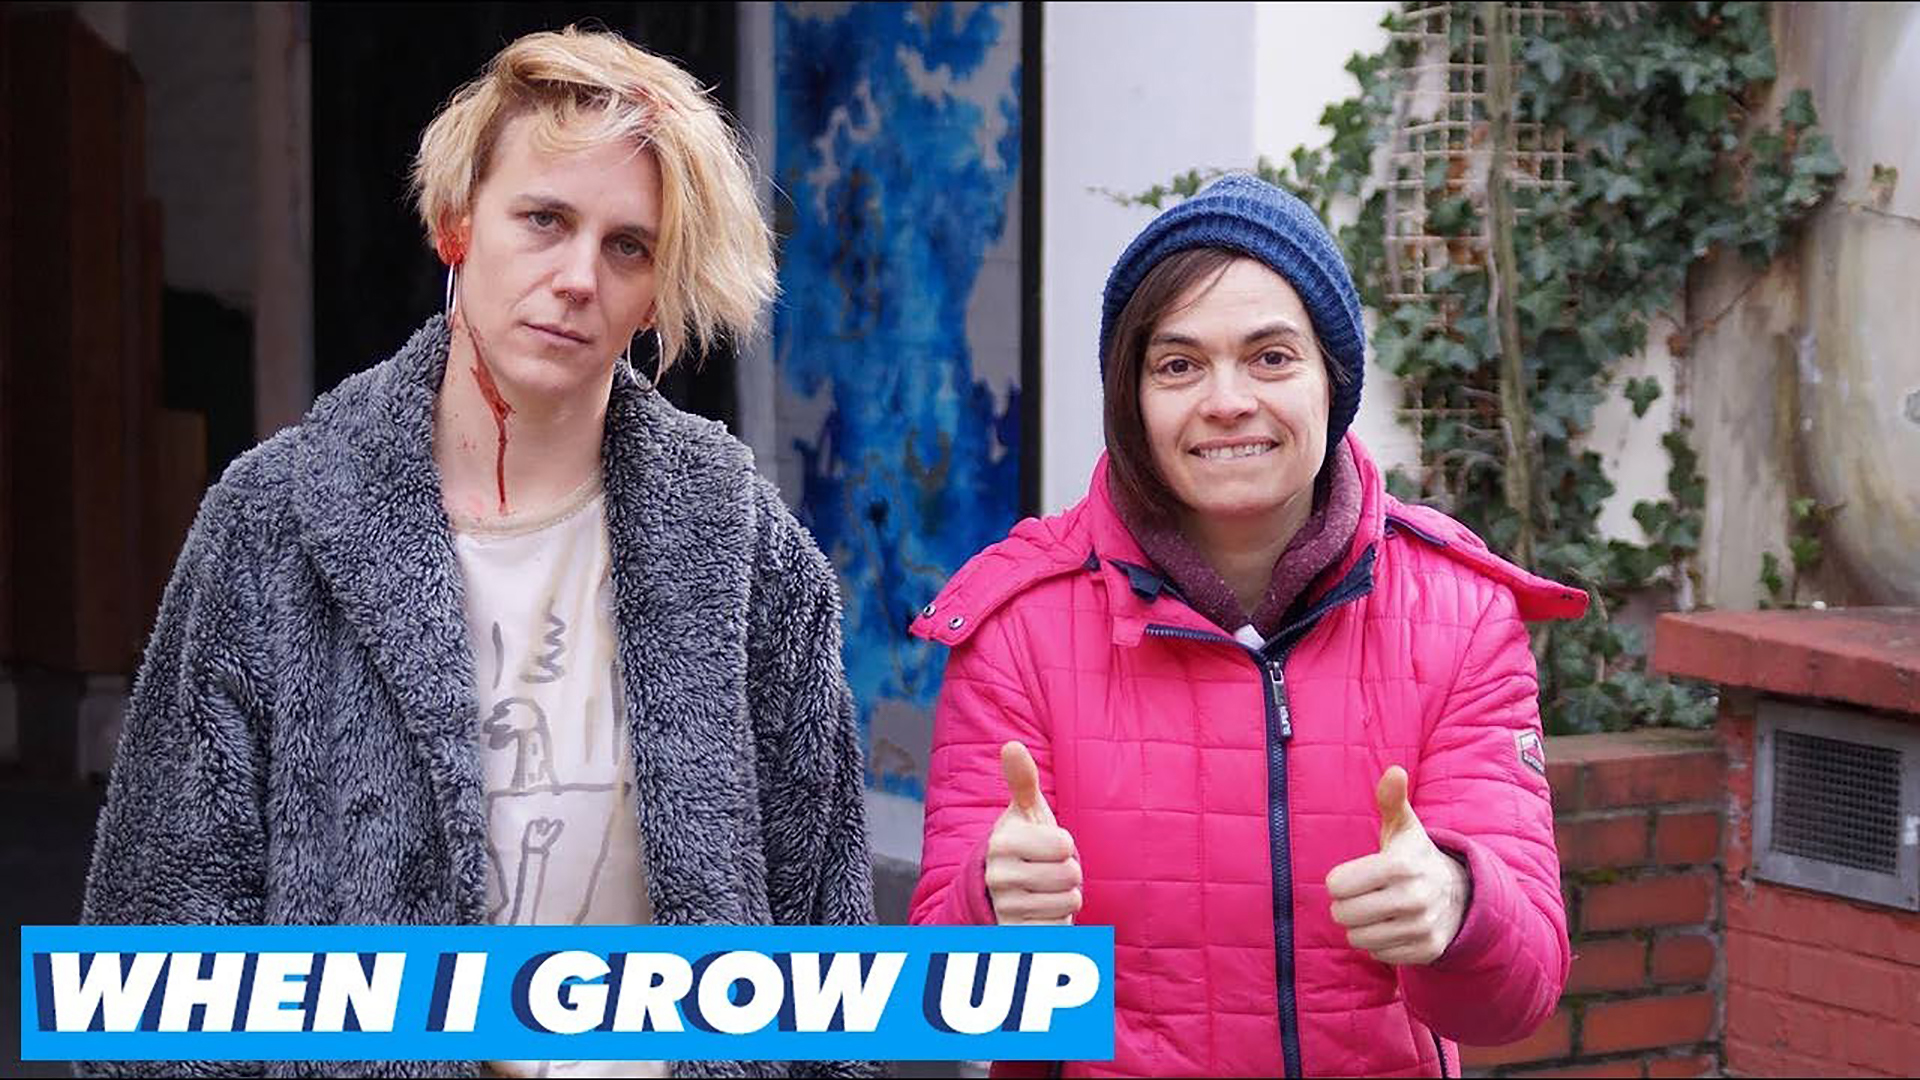 When I Grow Up